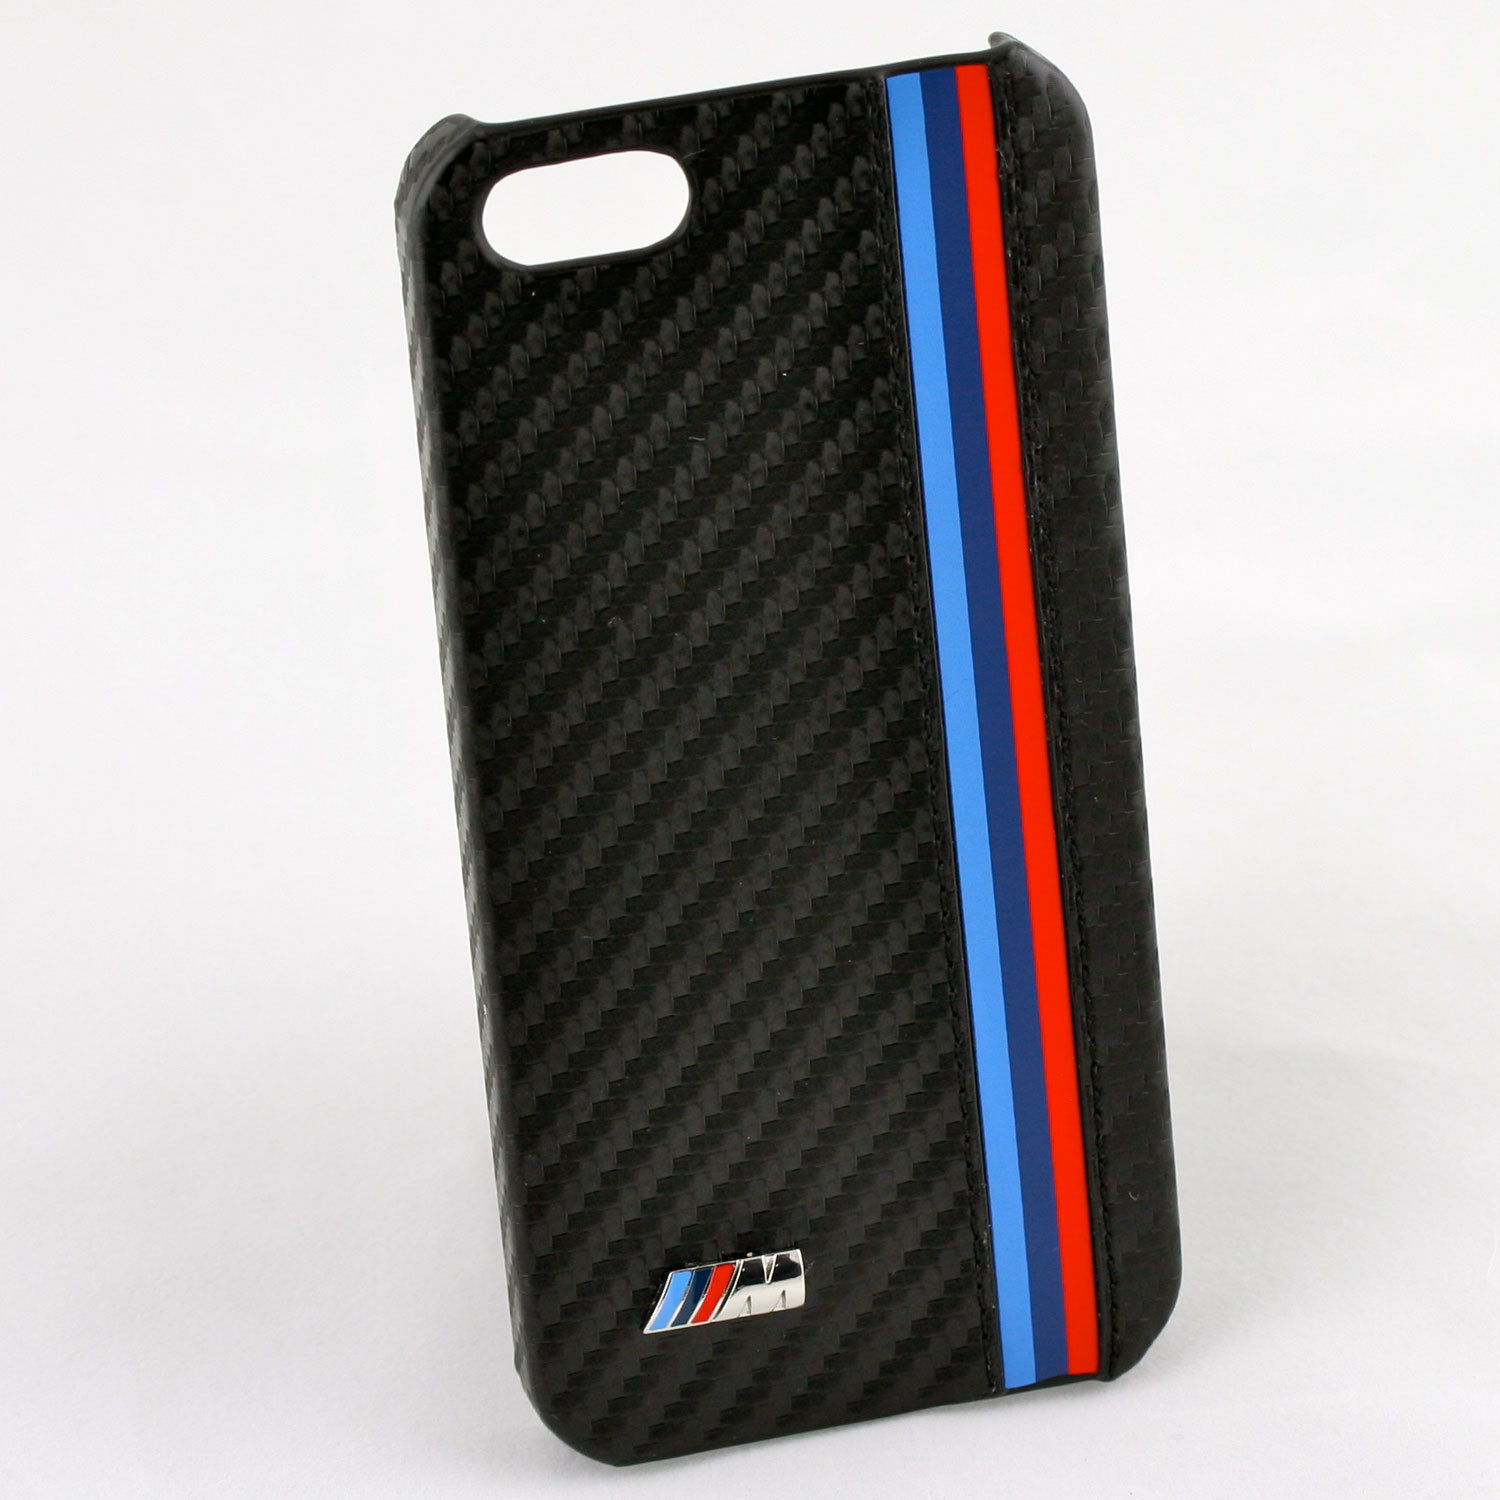 buy popular 7a1b2 60820 CG Mobile BMW iPhone 5 / 5S Motorsport Carbon Fiber Effect Hard Case  BMHCP5MC